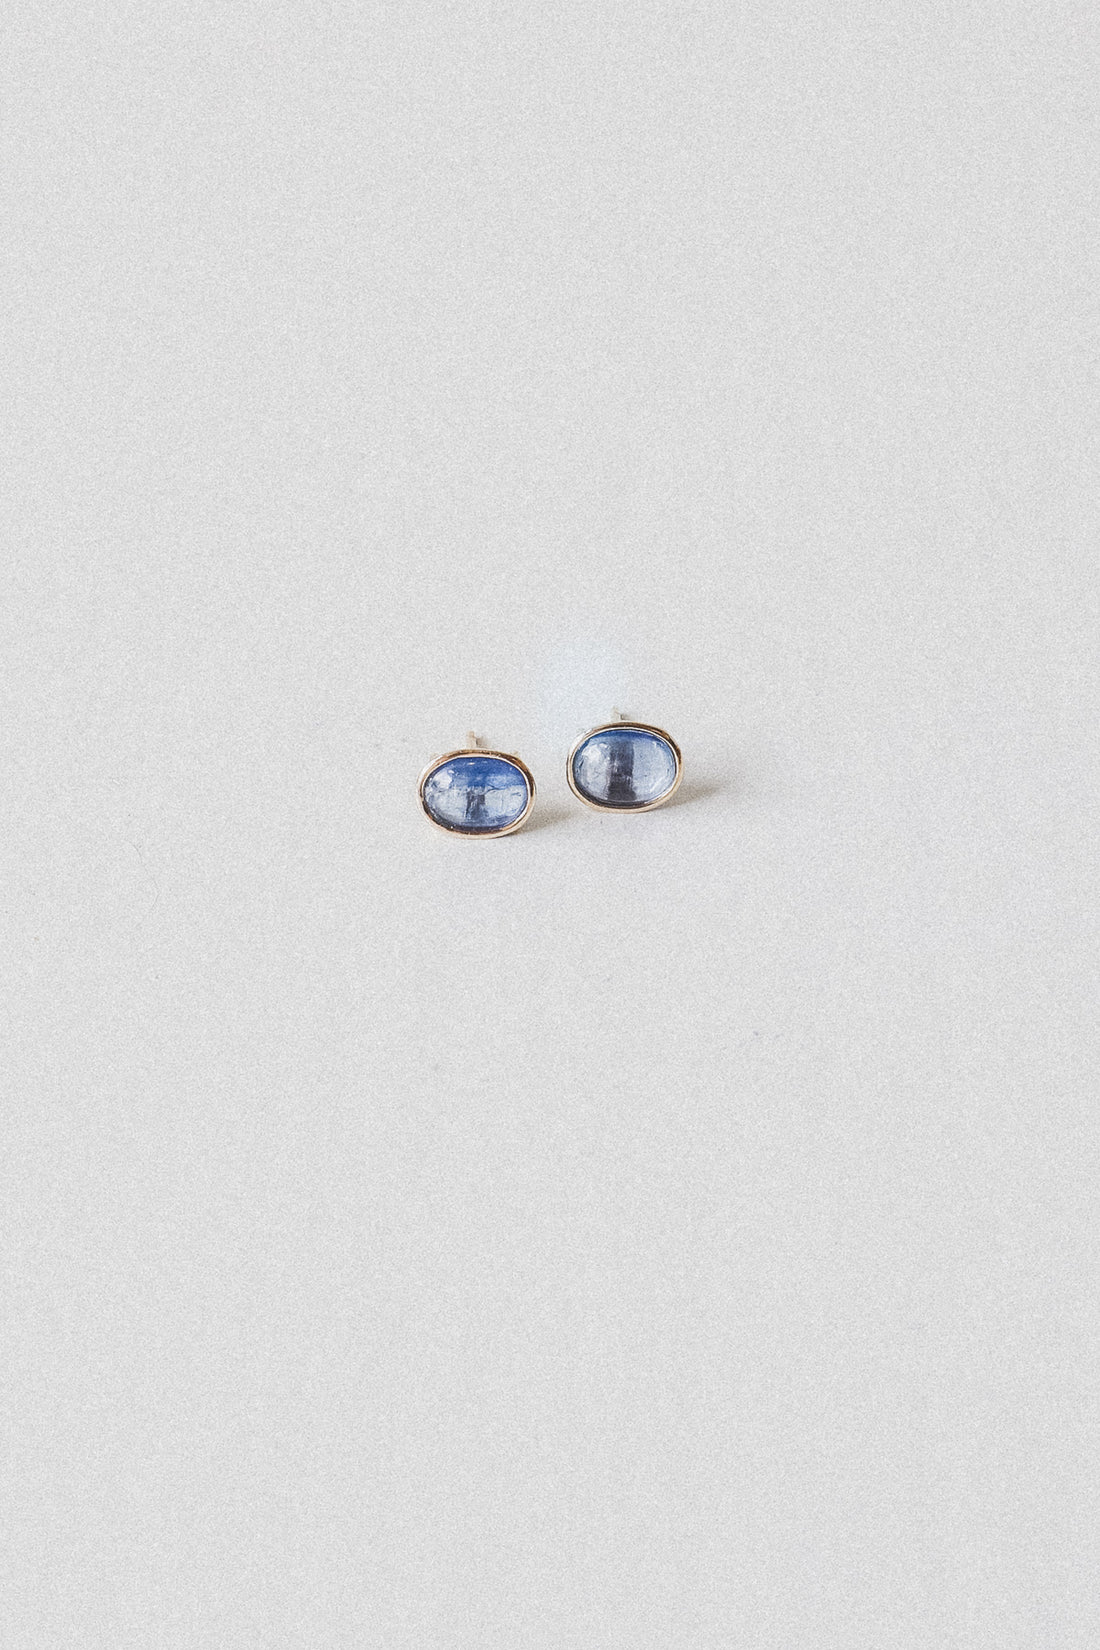 KYANITE FLOATING STUD EARRINGS IN 14K GOLD